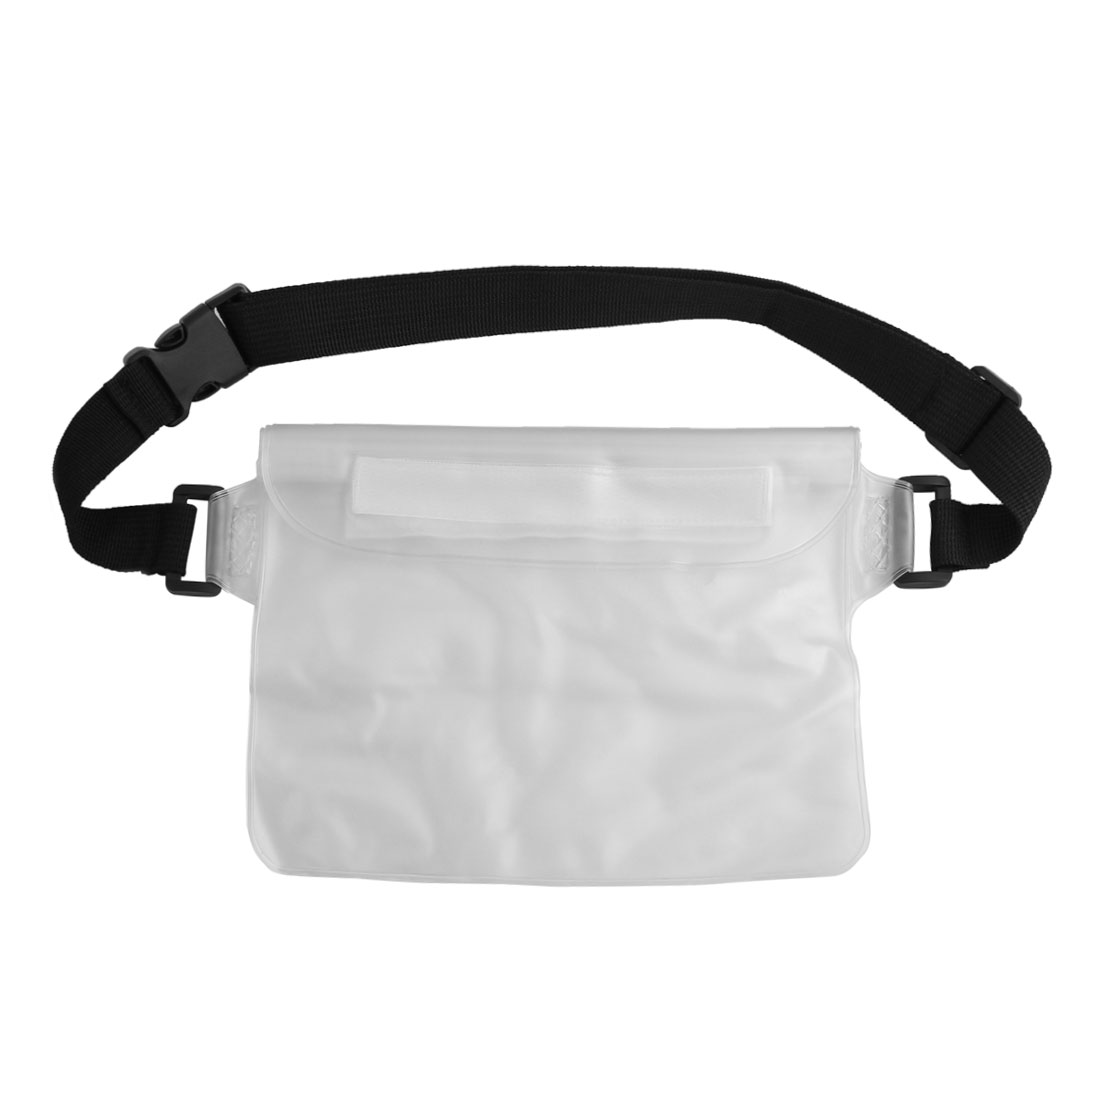 Portable Swimming Kit Water Resistant Phone Bag Pouch 15.3 x 21.8cm Clear